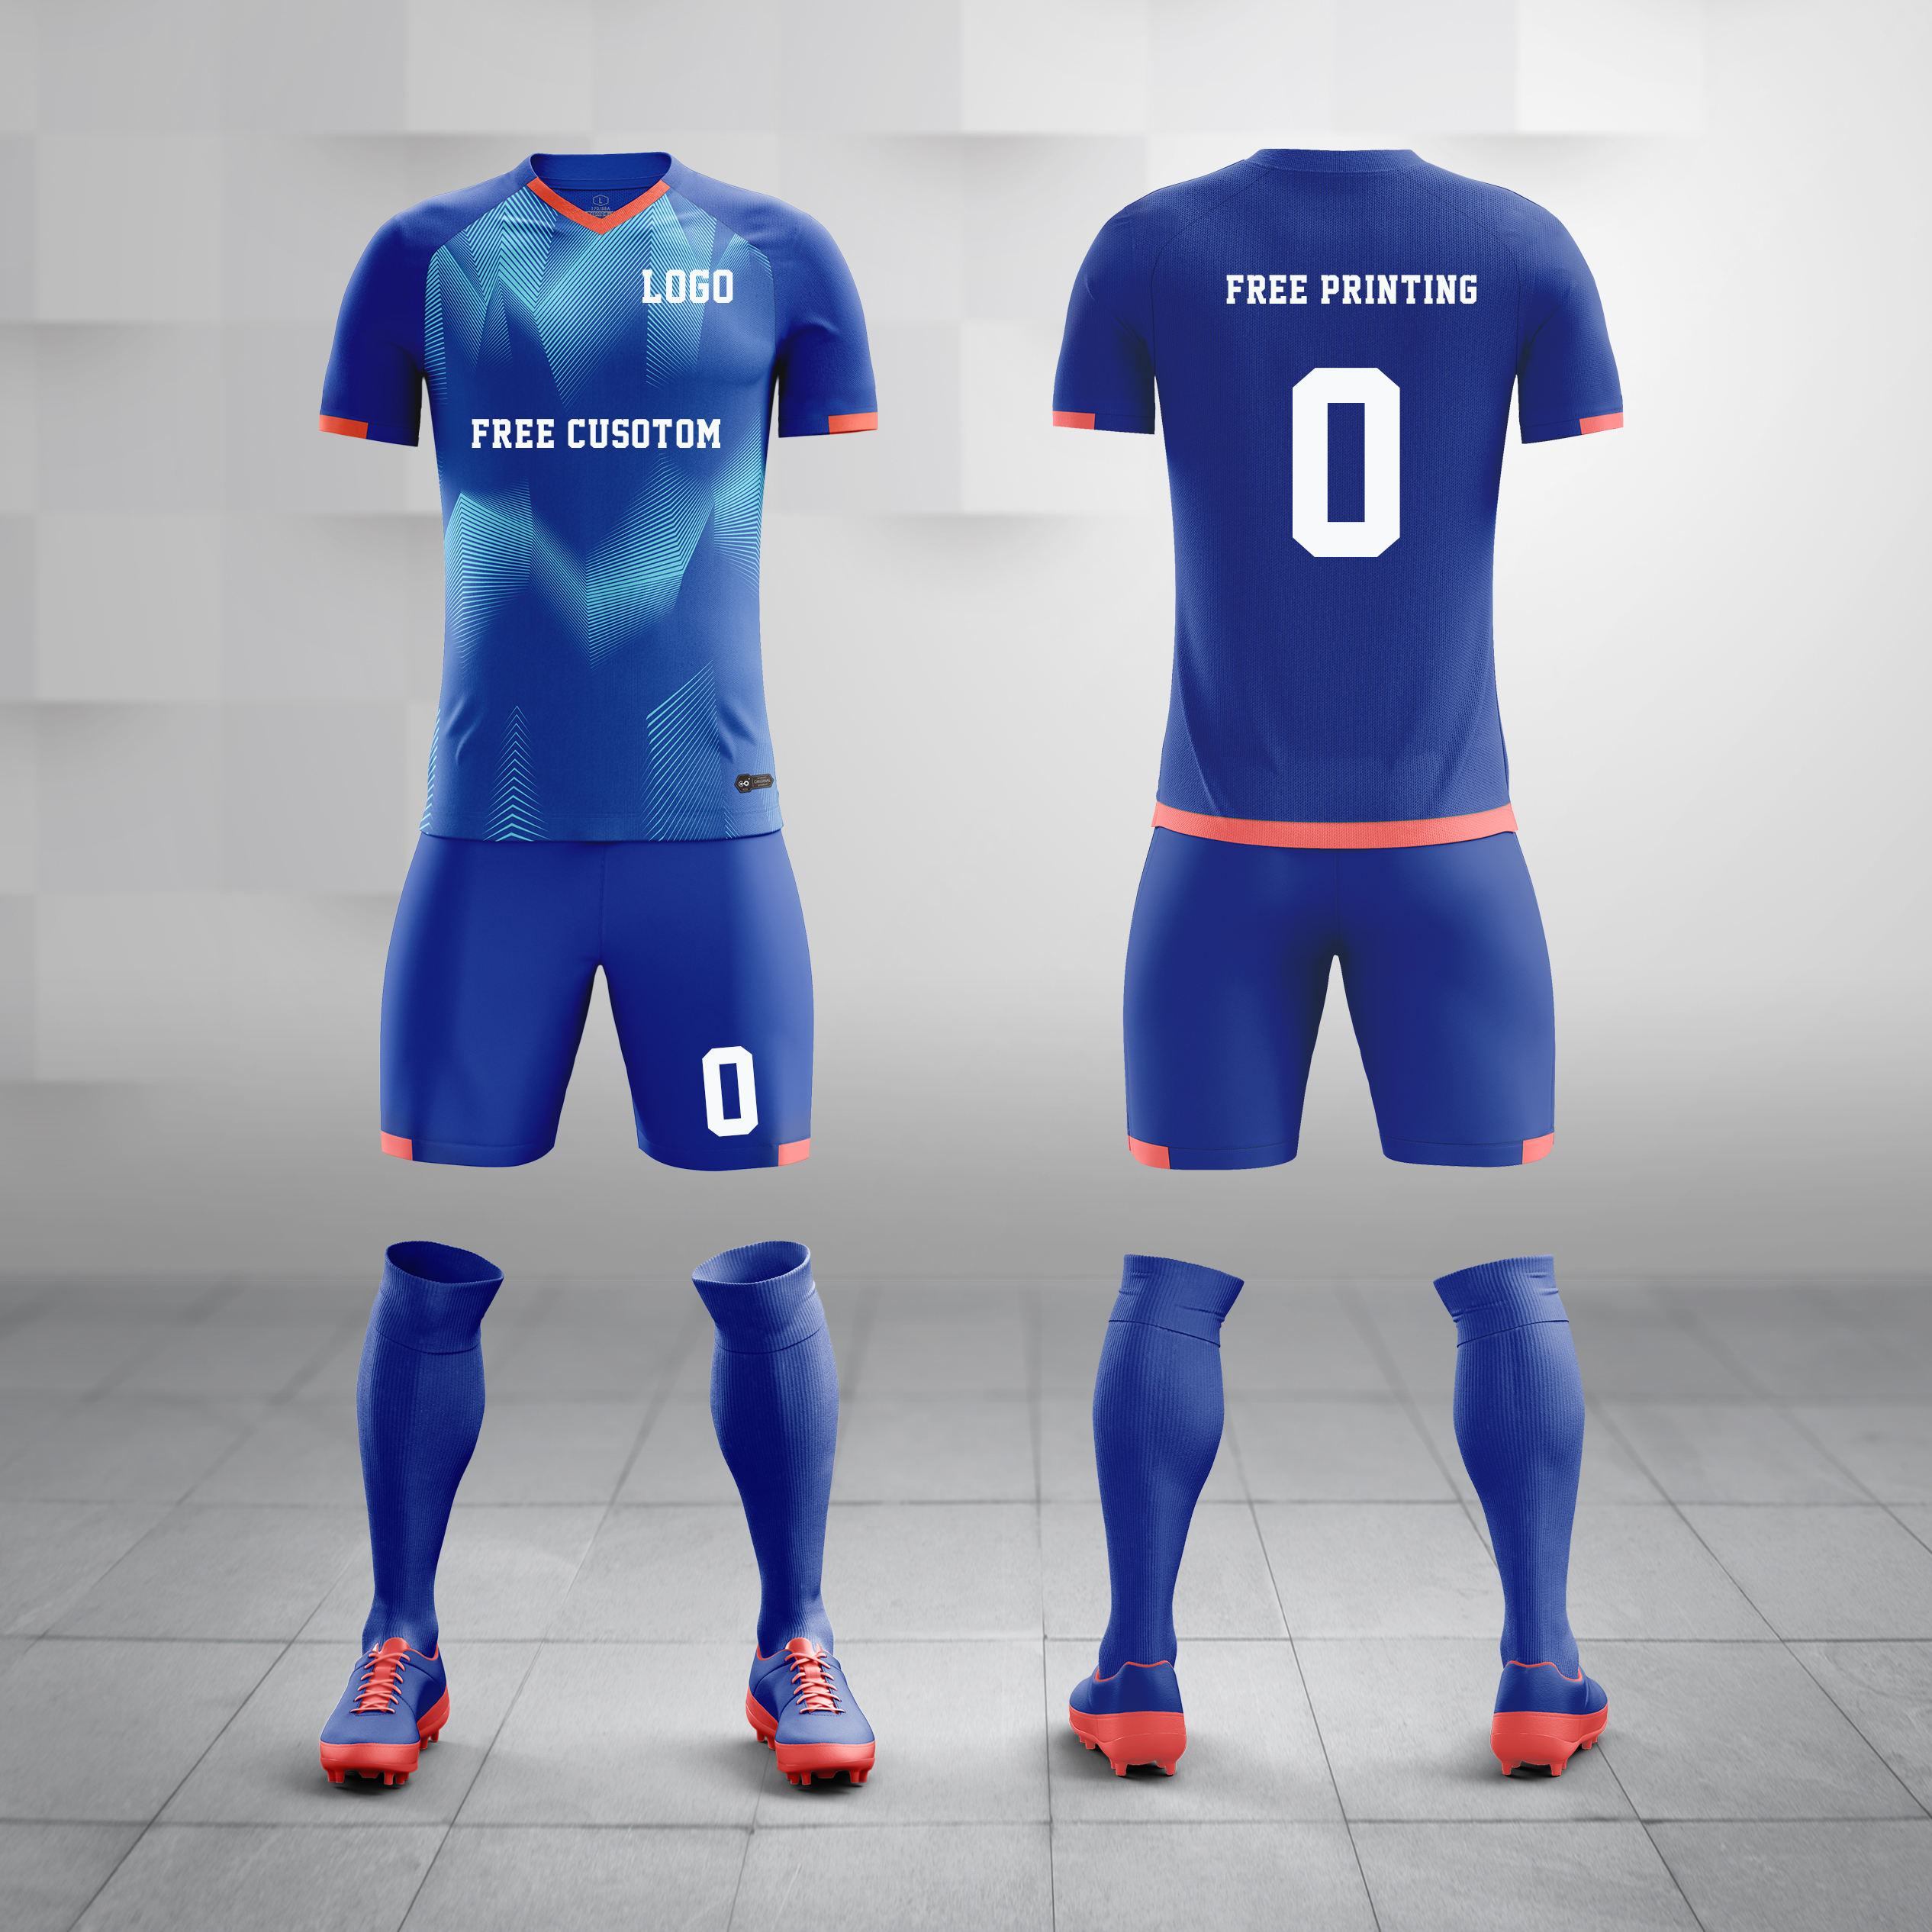 2020 New model custom latest design quick dry sublimated team soccer youth football shirts uniform jersey kits set